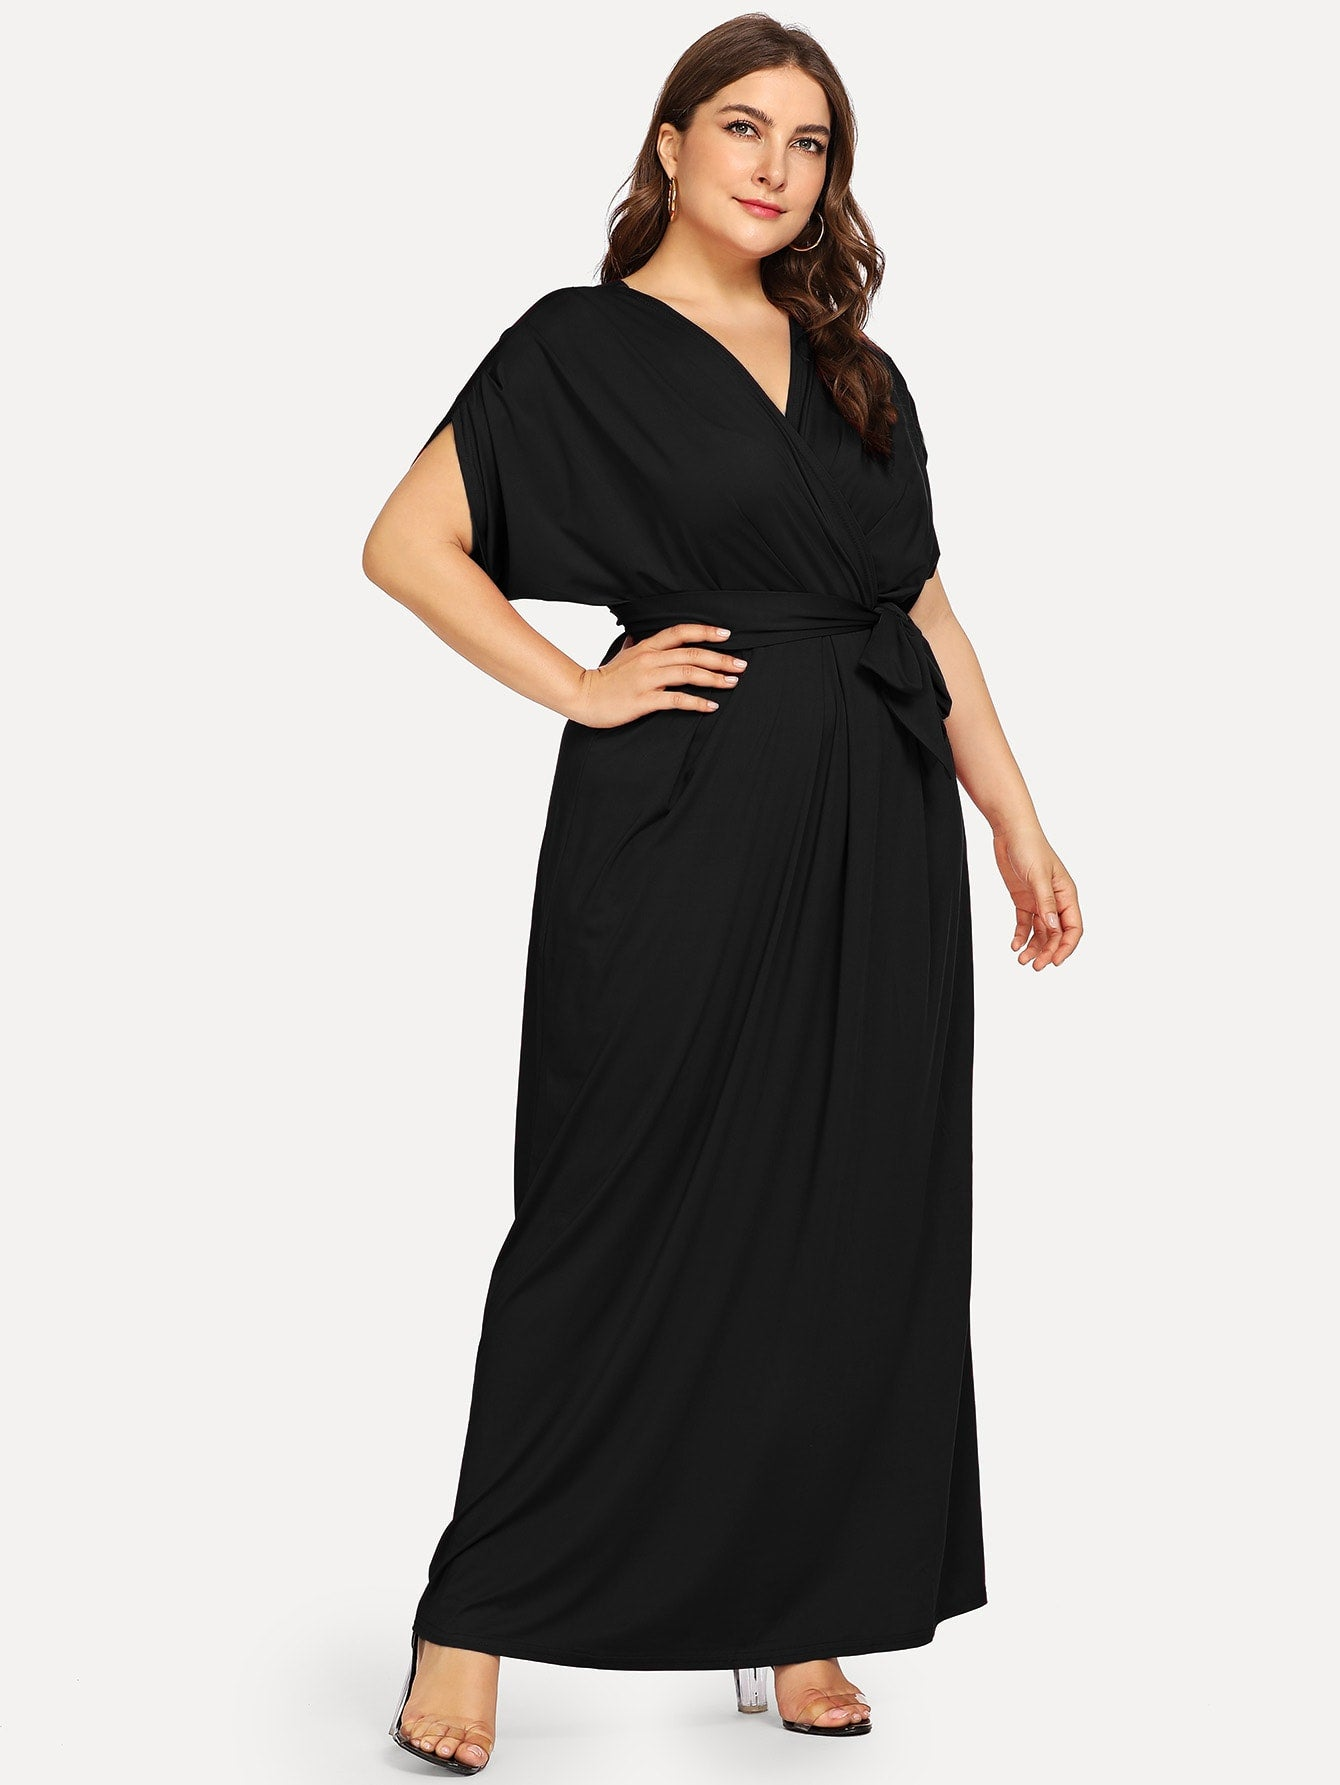 Plus Size Black Self Tie Maxi Dress